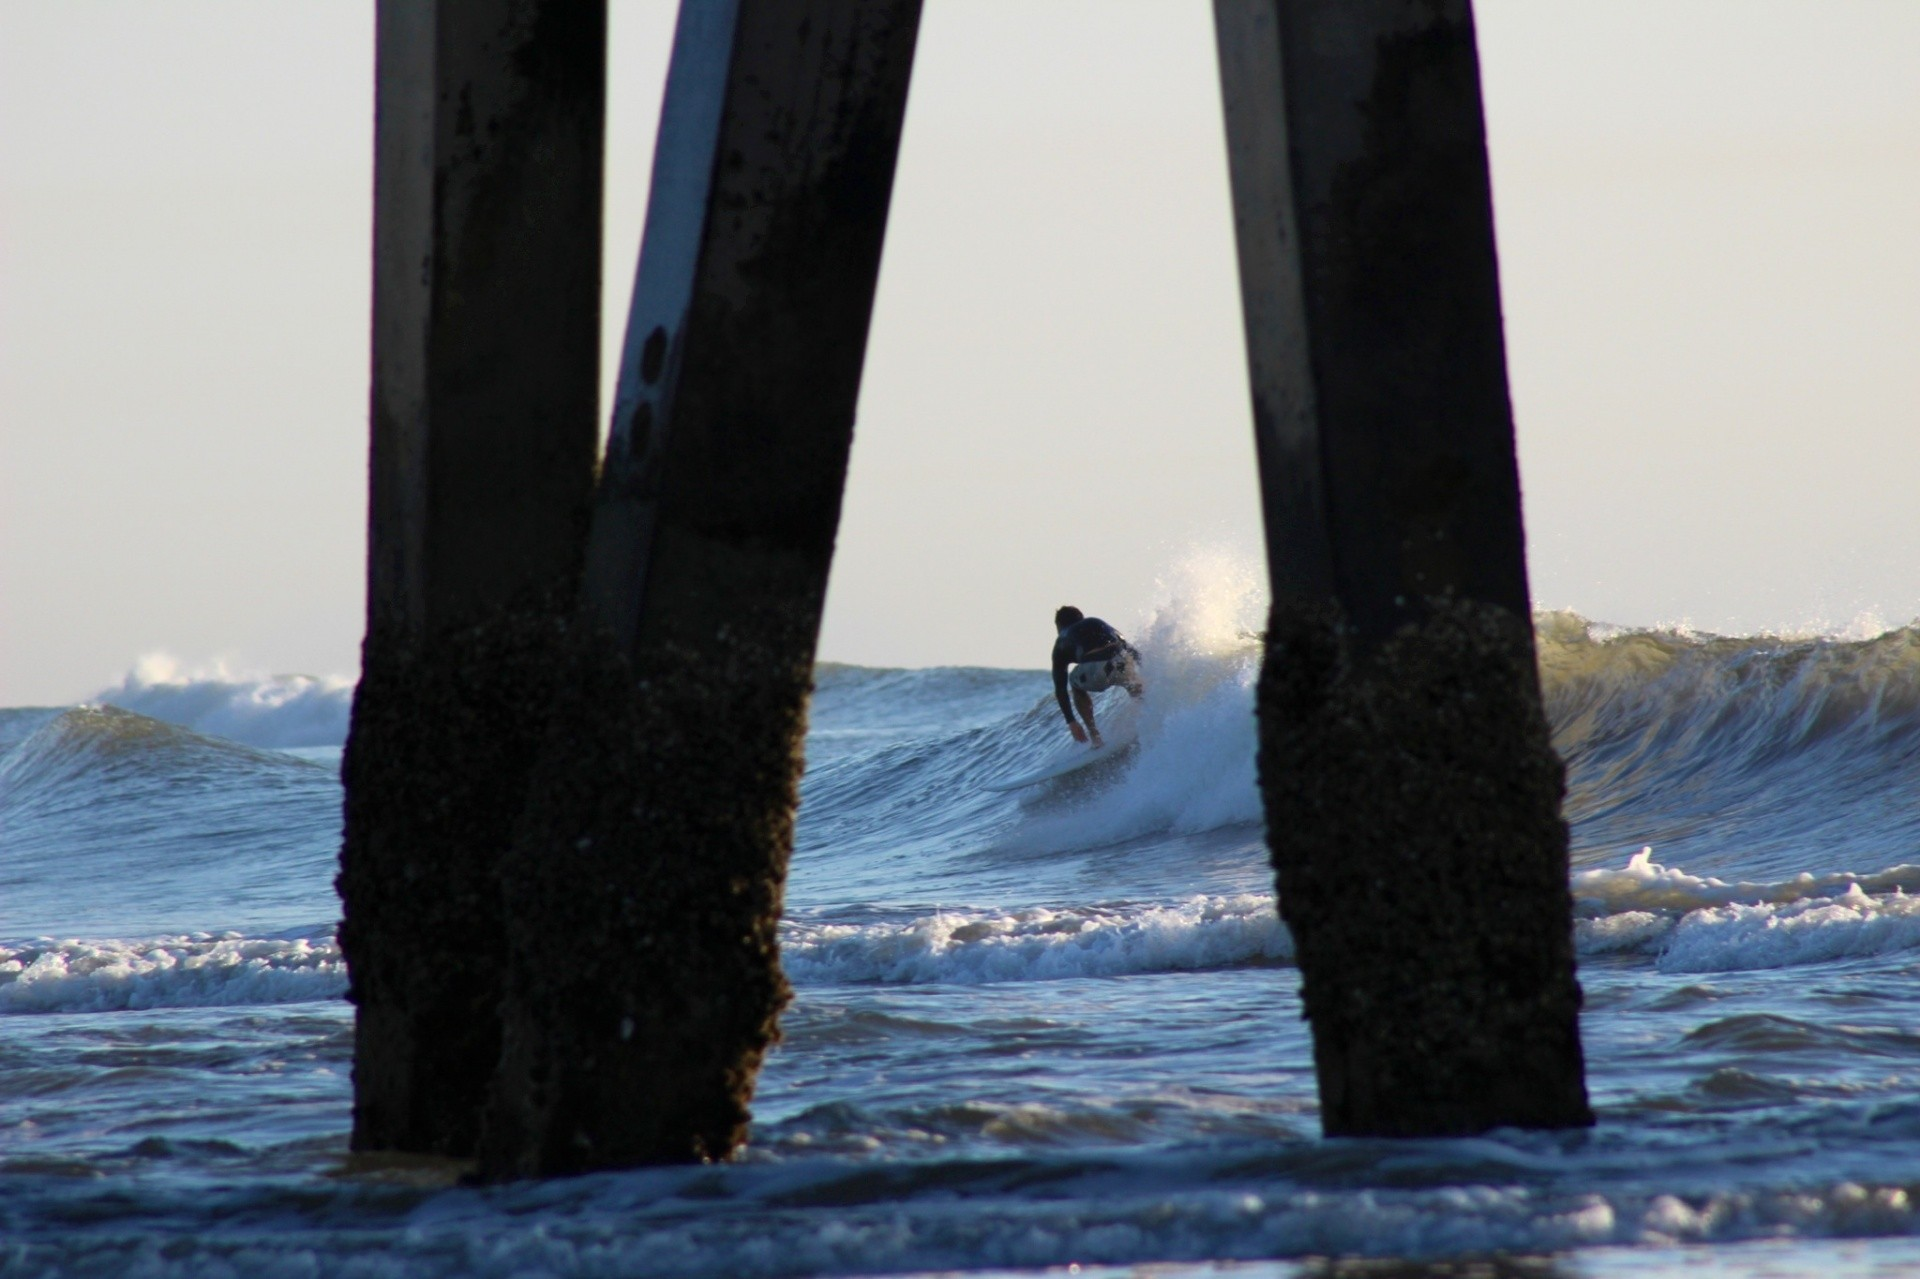 SurfCore's photo of Jacksonville Beach